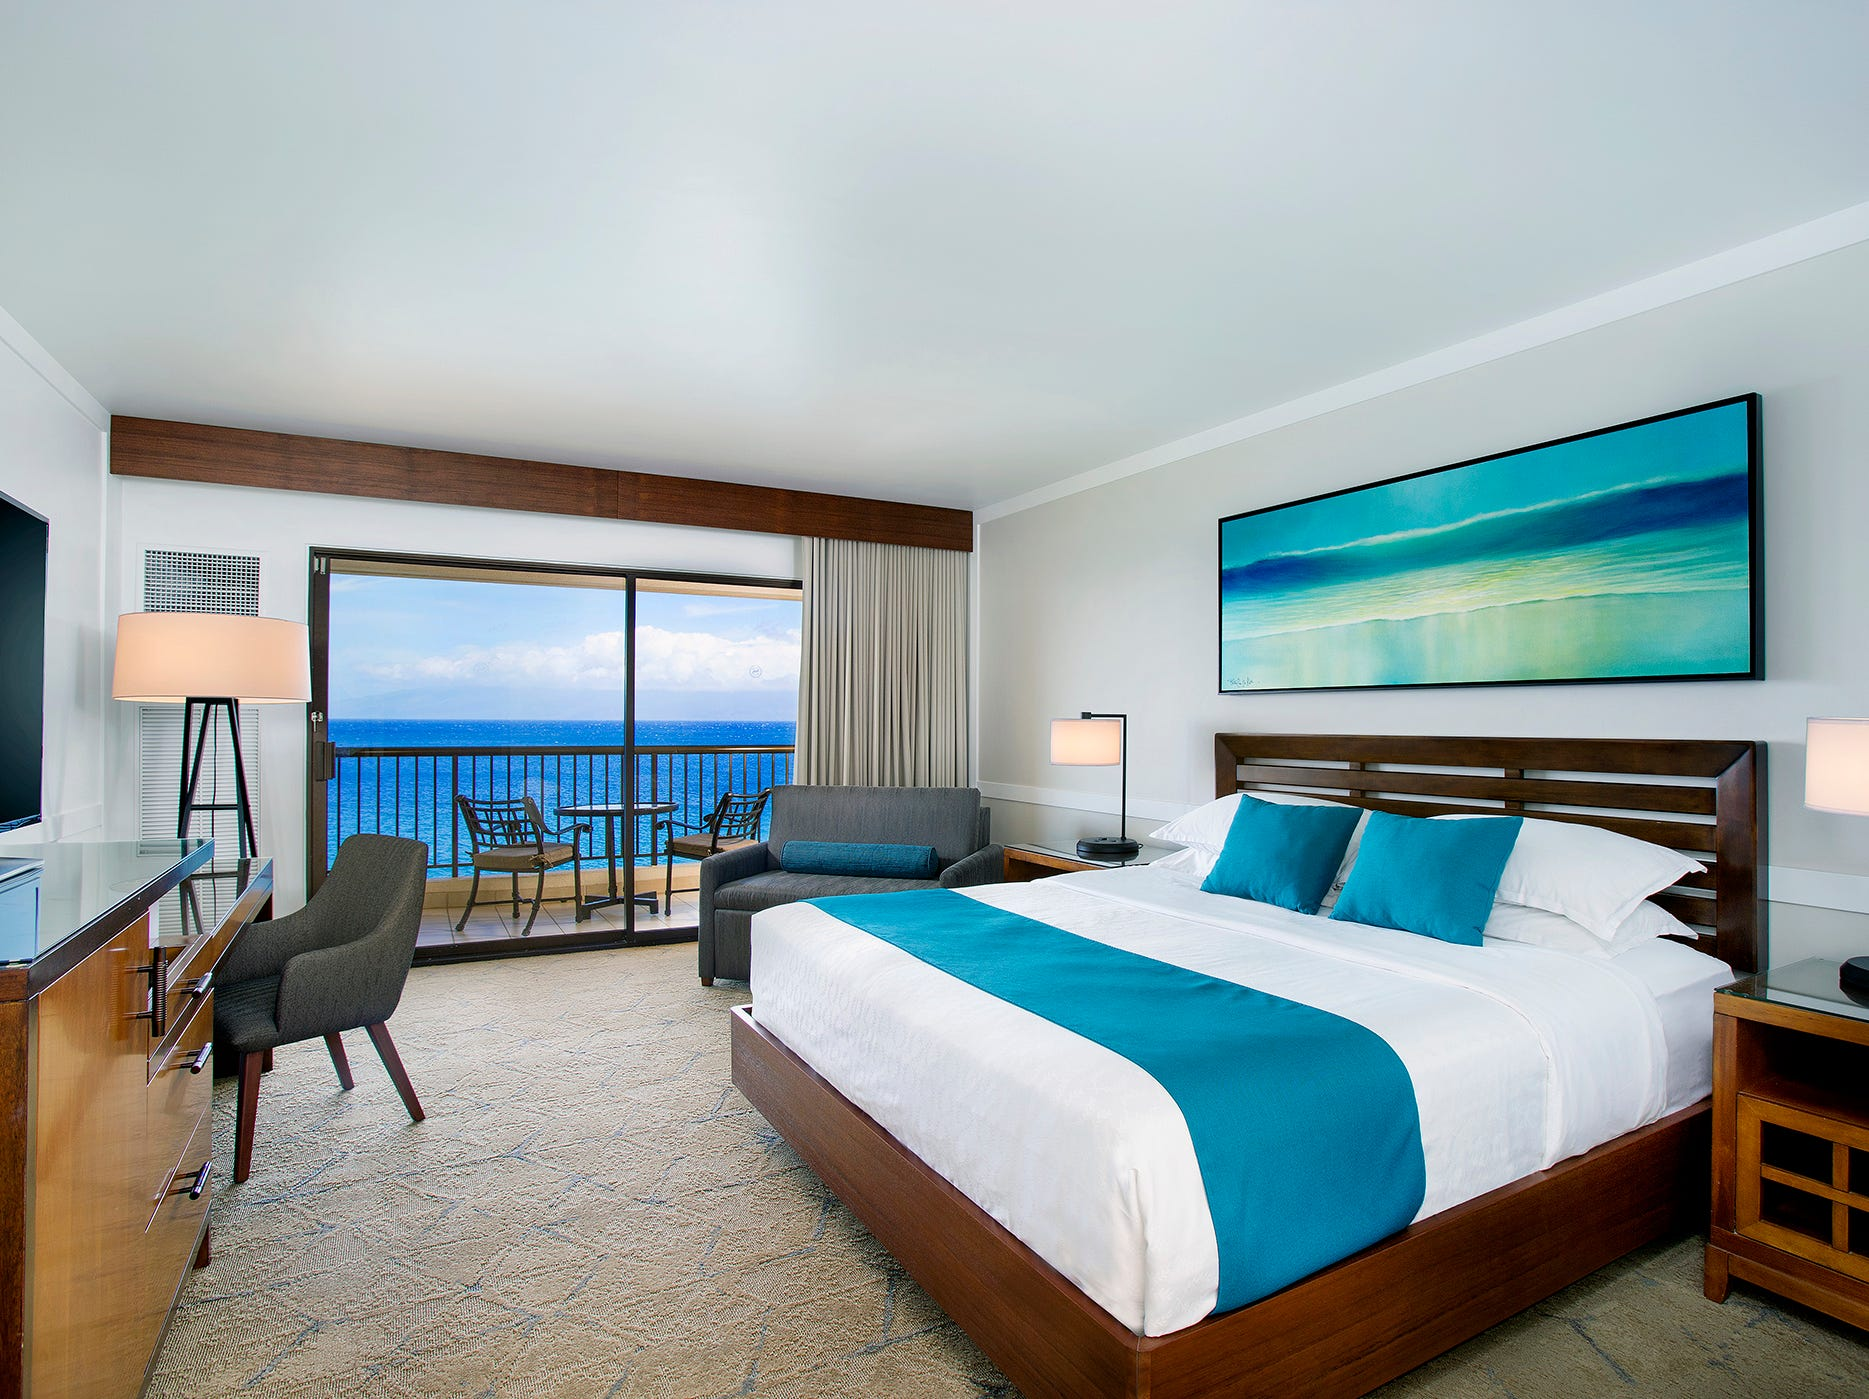 A $26.5 million renovation of Sheraton Maui Resort & Spa has transformed the property's 508 guestrooms and suites.